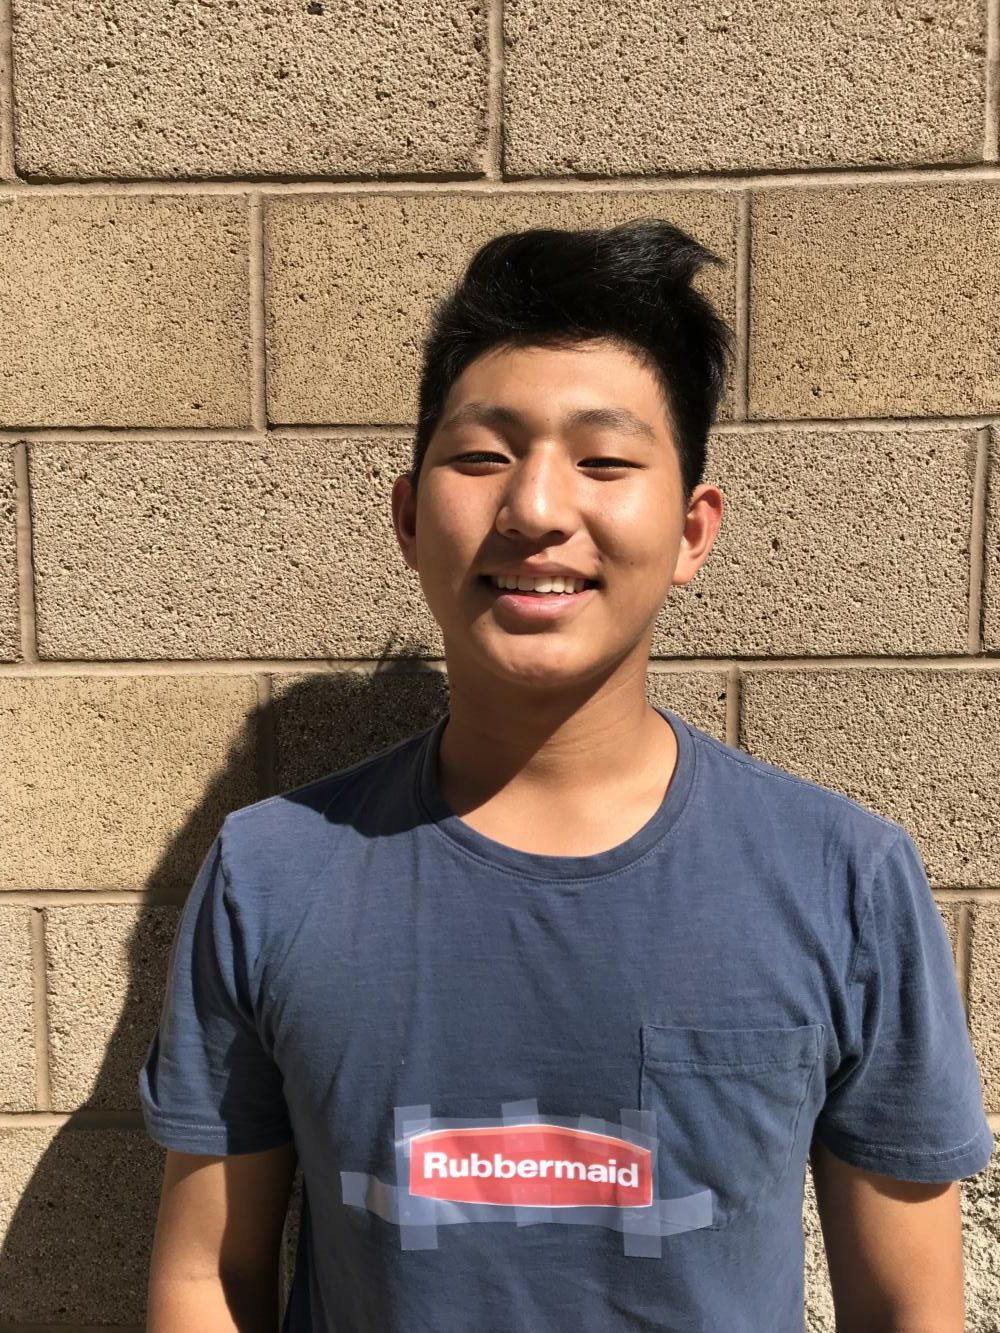 Yu scored a 1570 on the SAT. He is one of the 4,962 students in the nation to achieve this score or higher